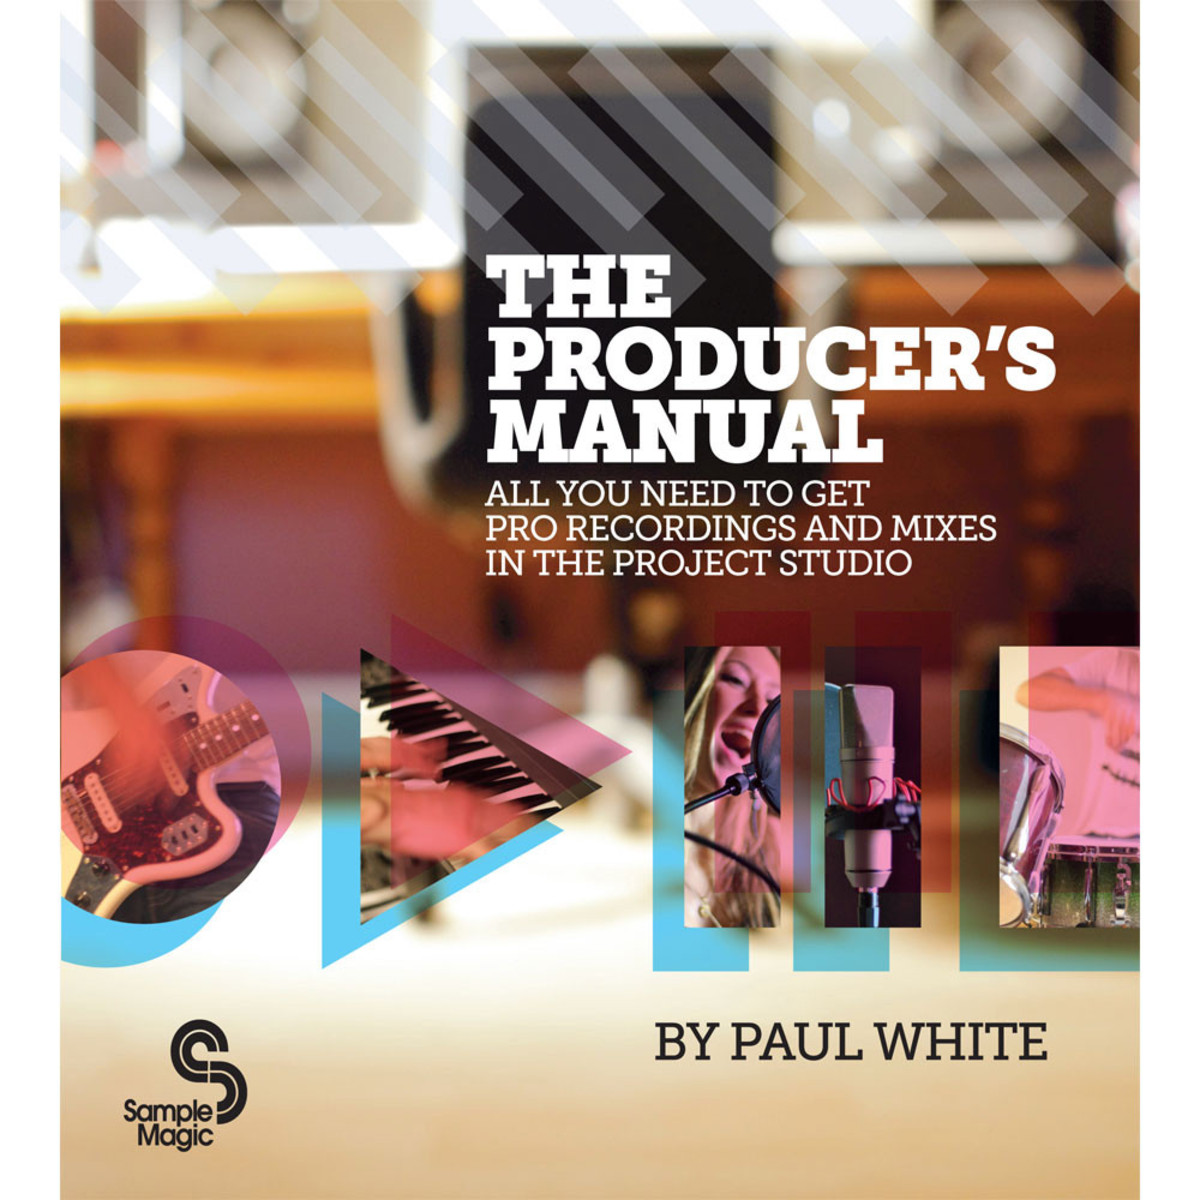 DISC Sample Magic The Producer's Manual by Paul White